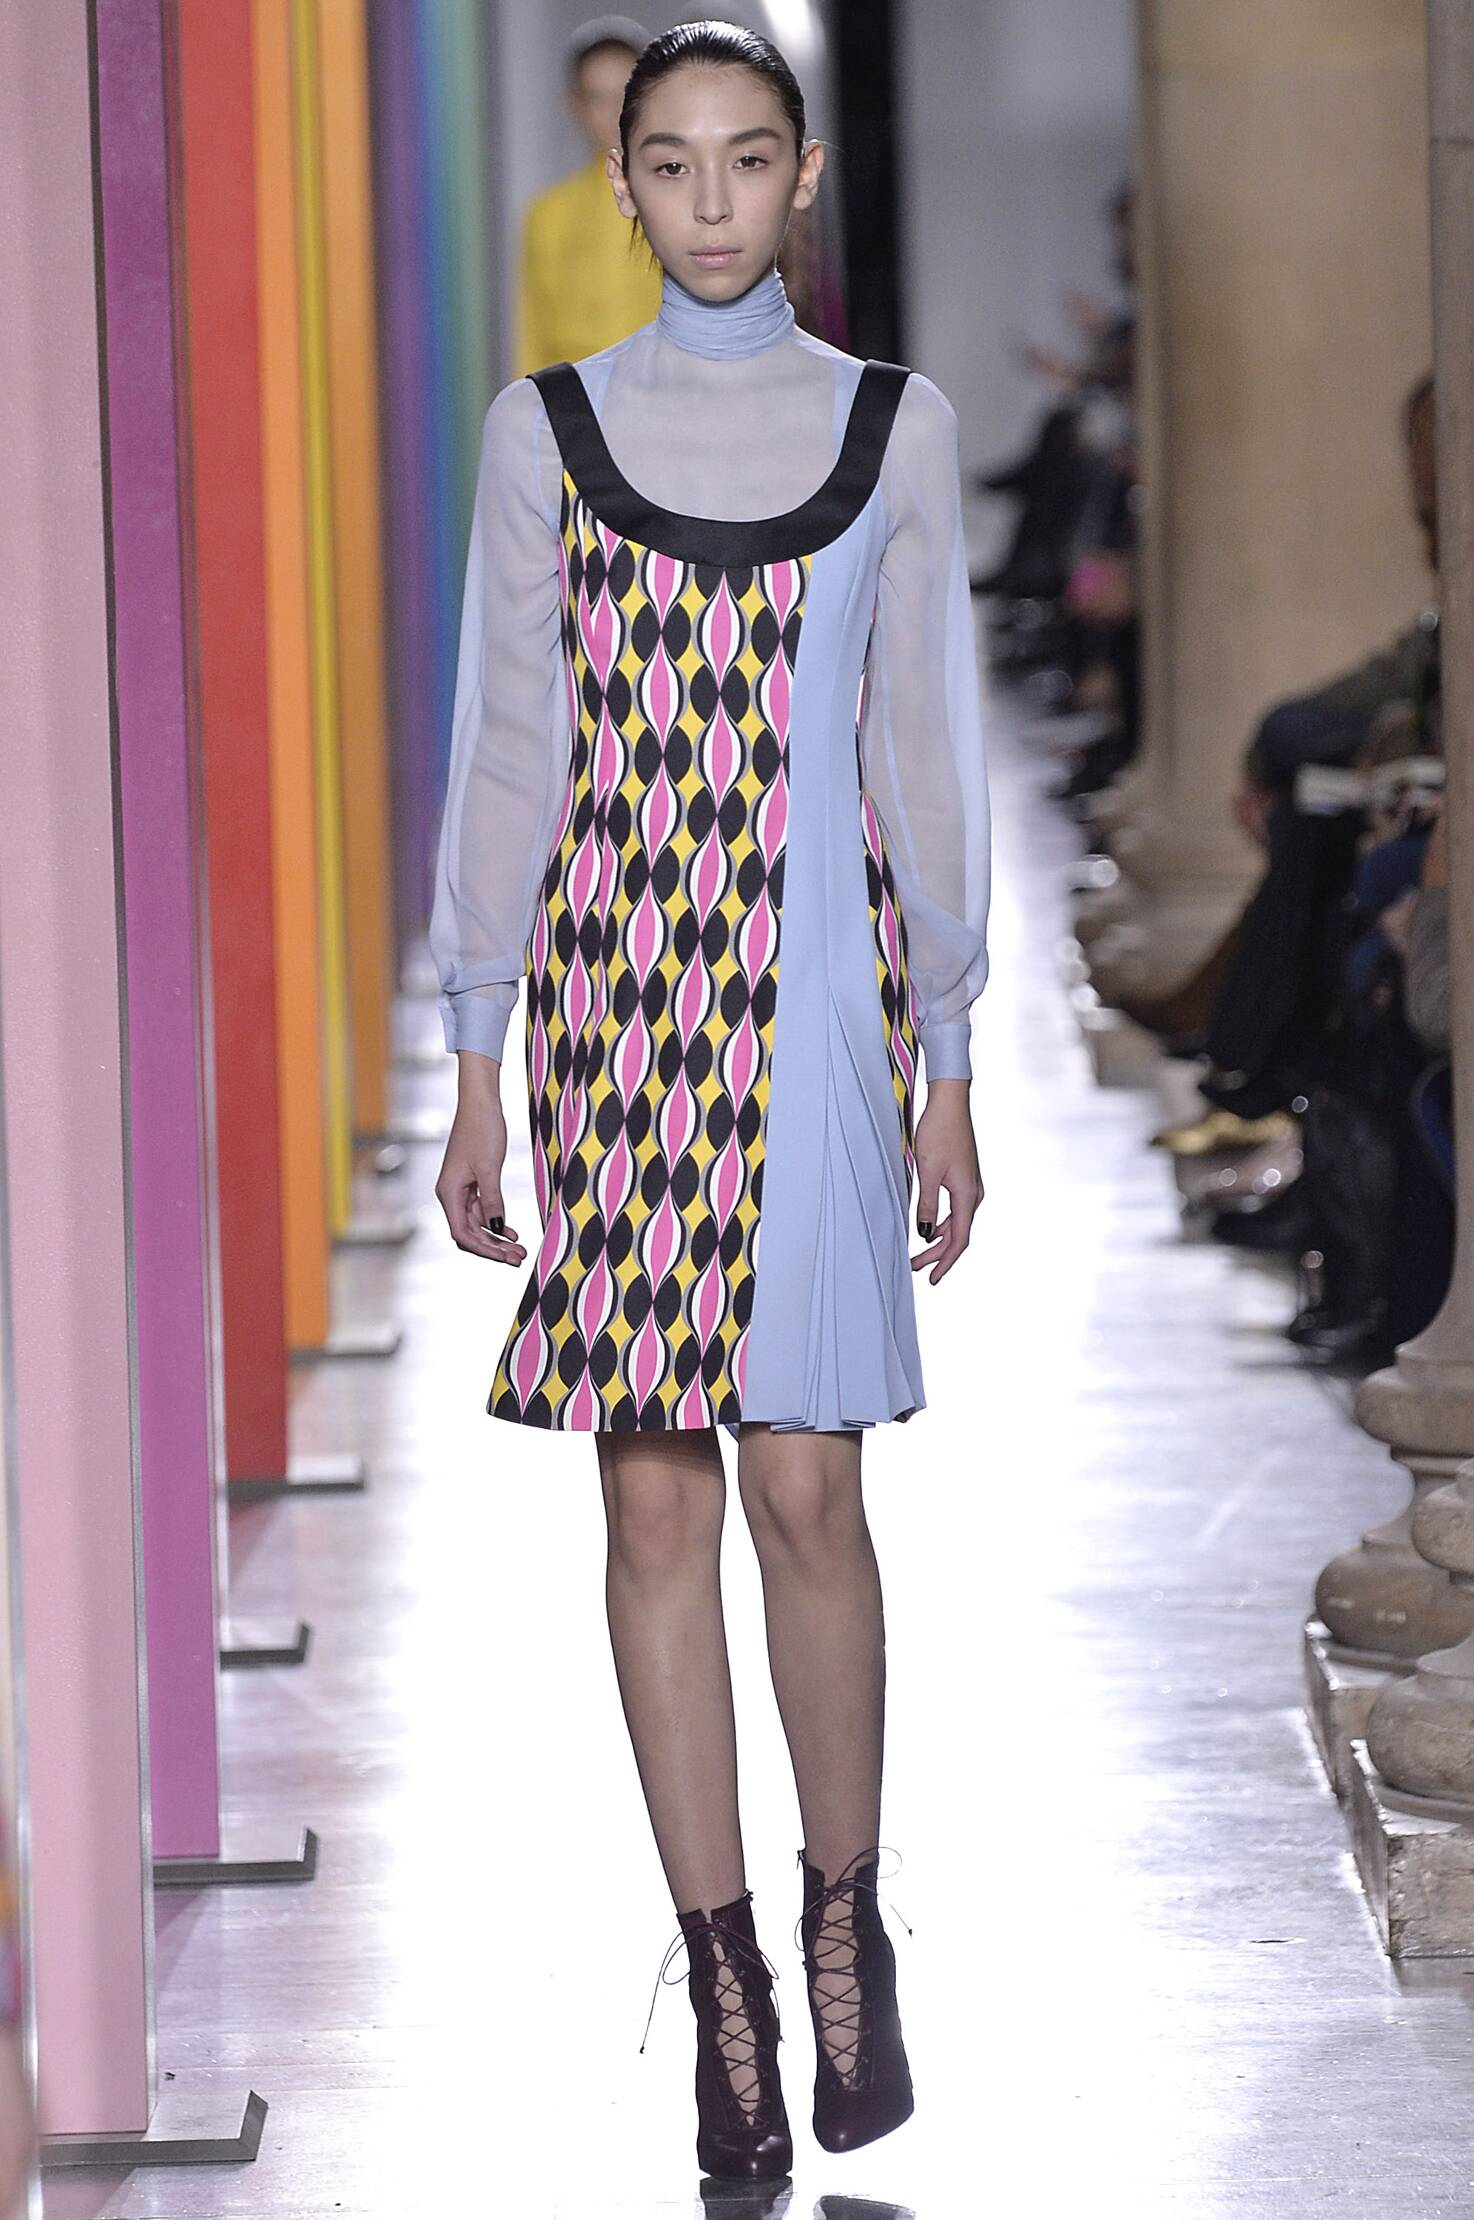 Jonathan Saunders Collection Winter 2015 Catwalk